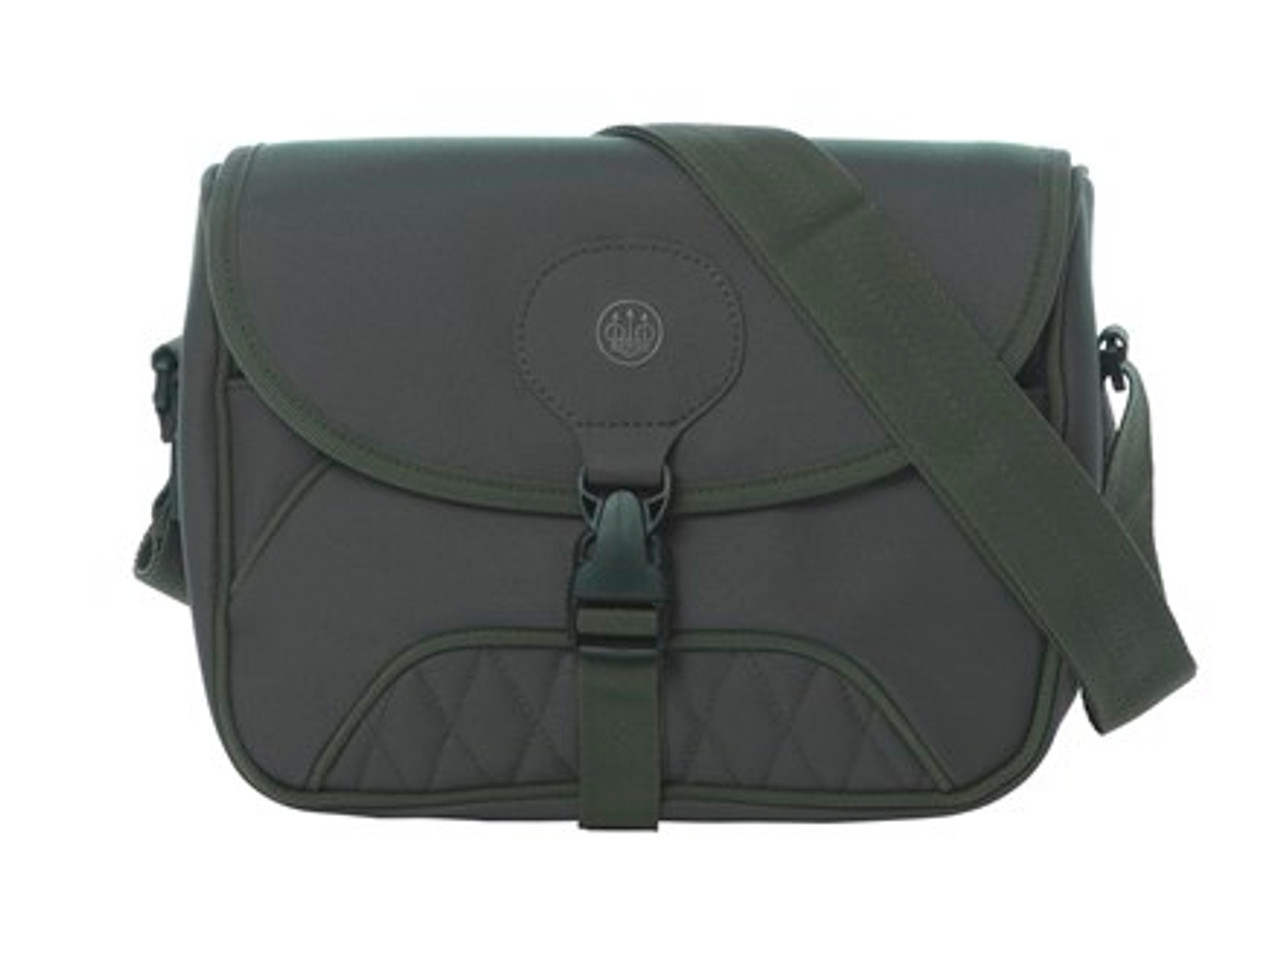 Beretta gamekeeper large cartridge bag front, shooting accessories